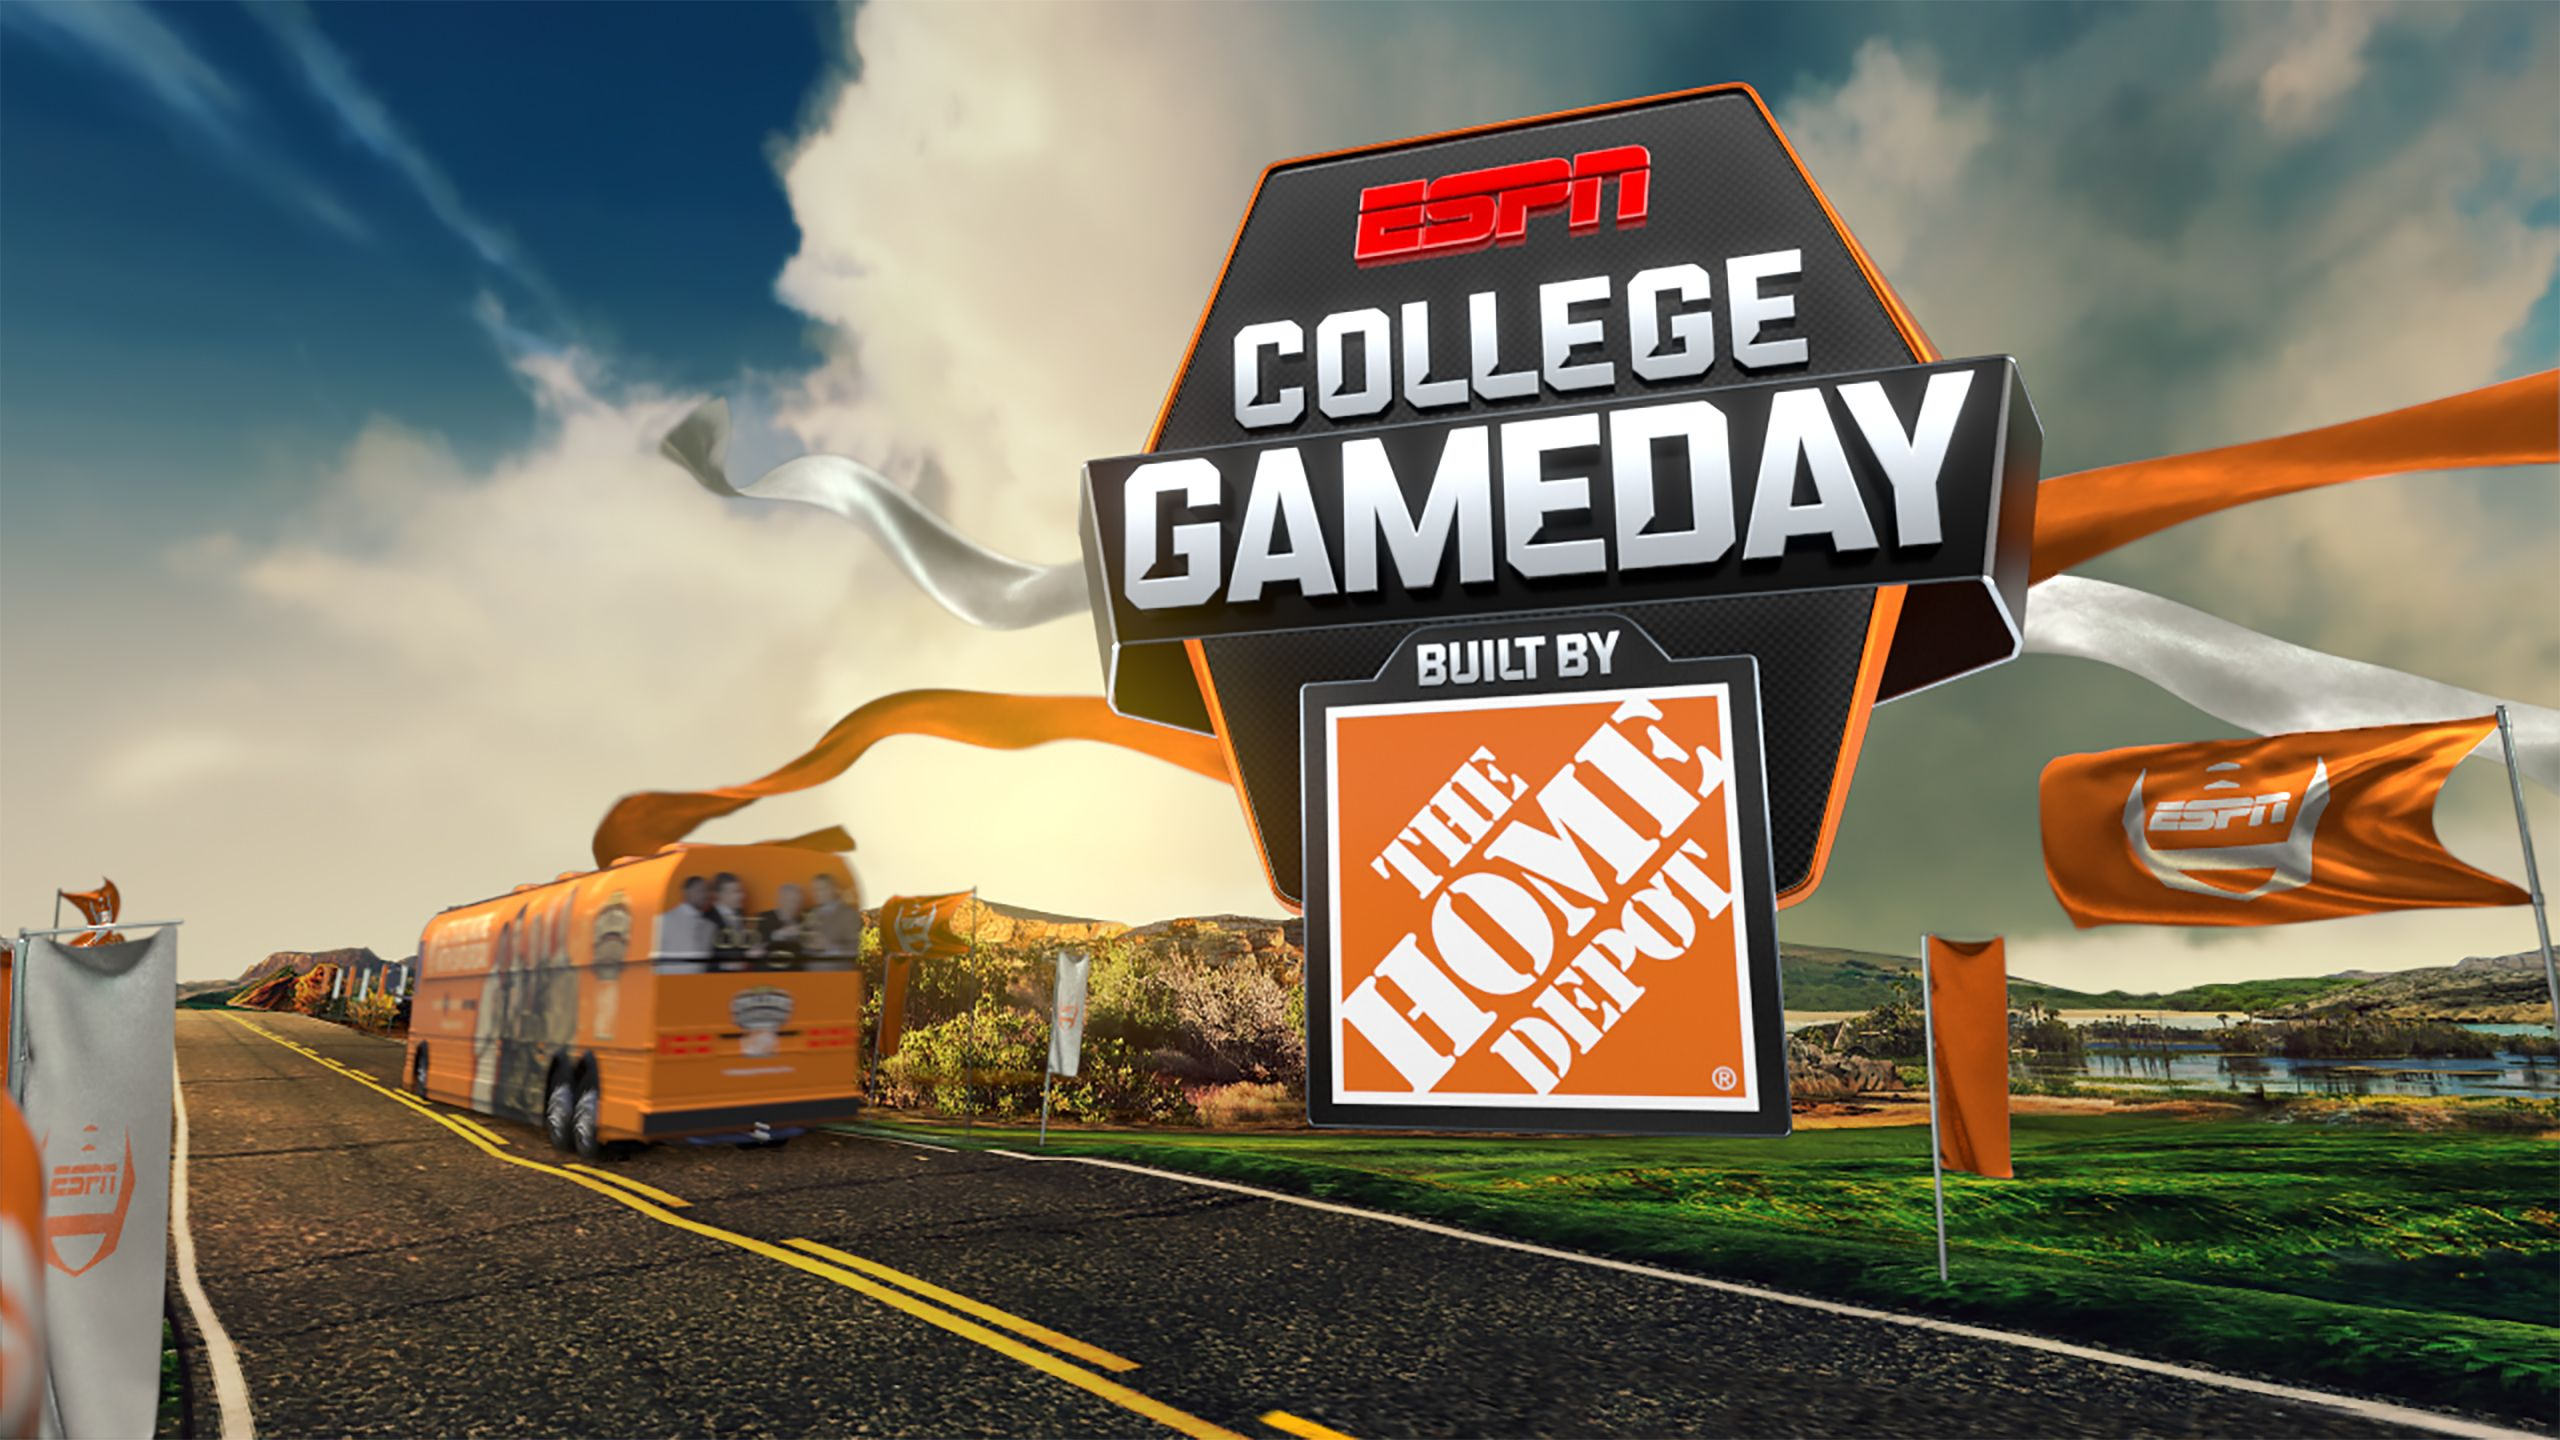 Thu, 4/26 - College GameDay Built by The Home Depot